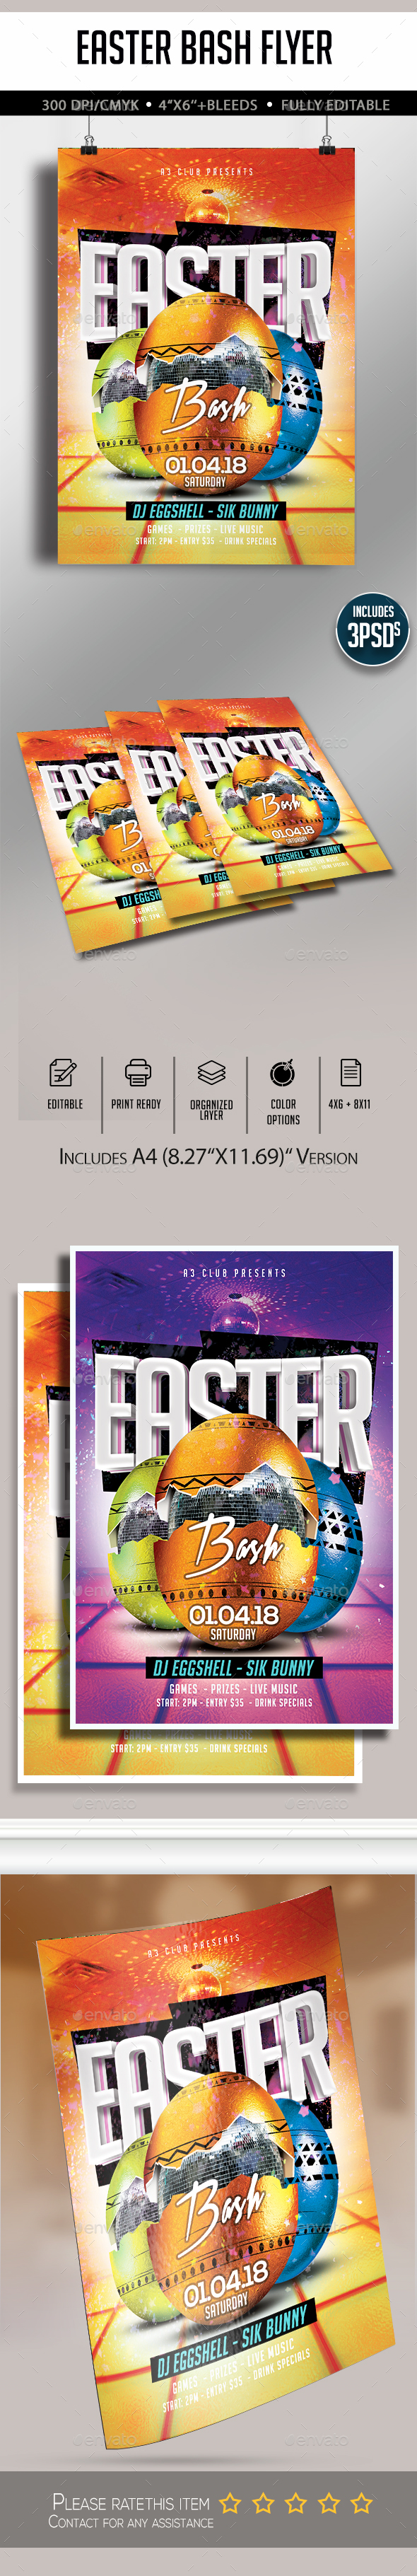 Easter Bash Flyer - Clubs & Parties Events